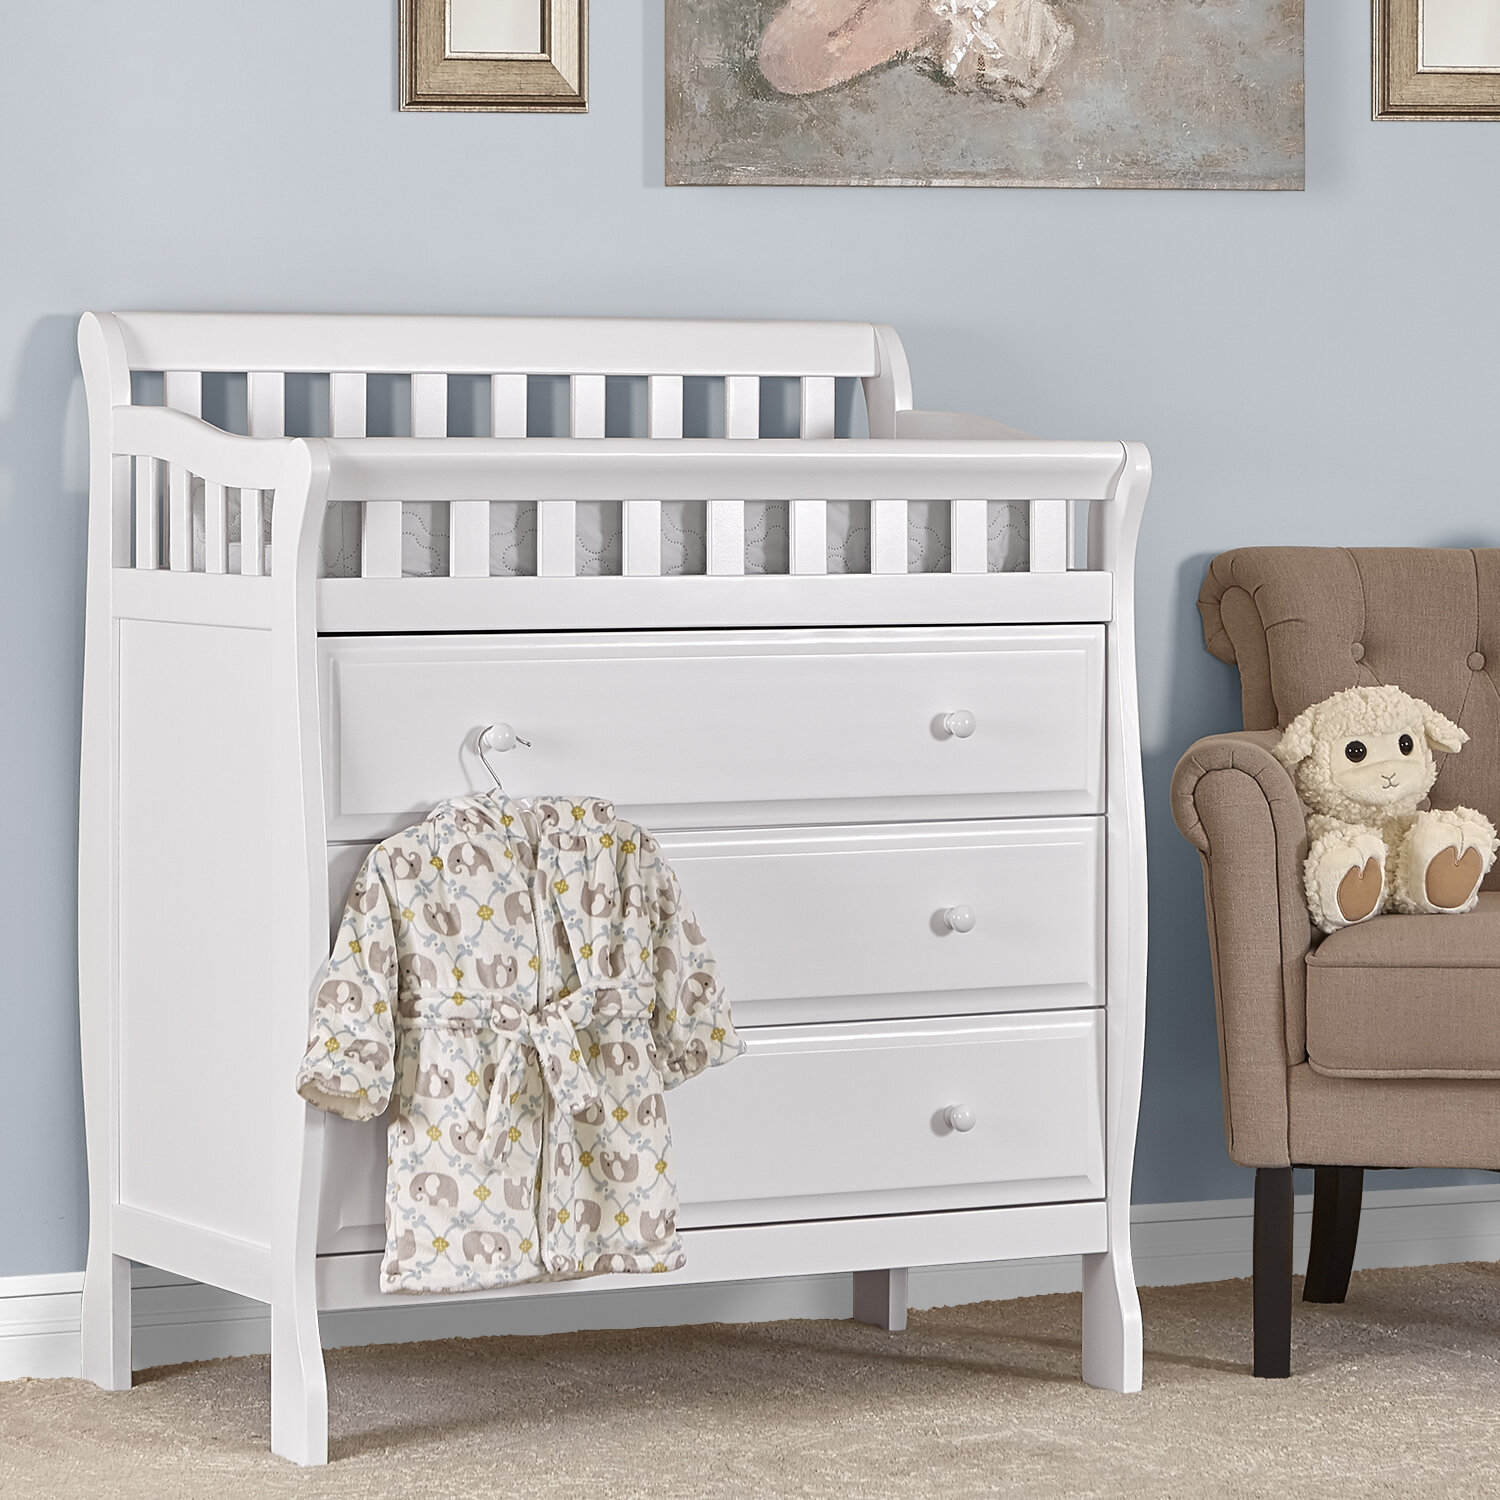 Picture of: Wonder Baby Changing Table Dresser White Child S Play